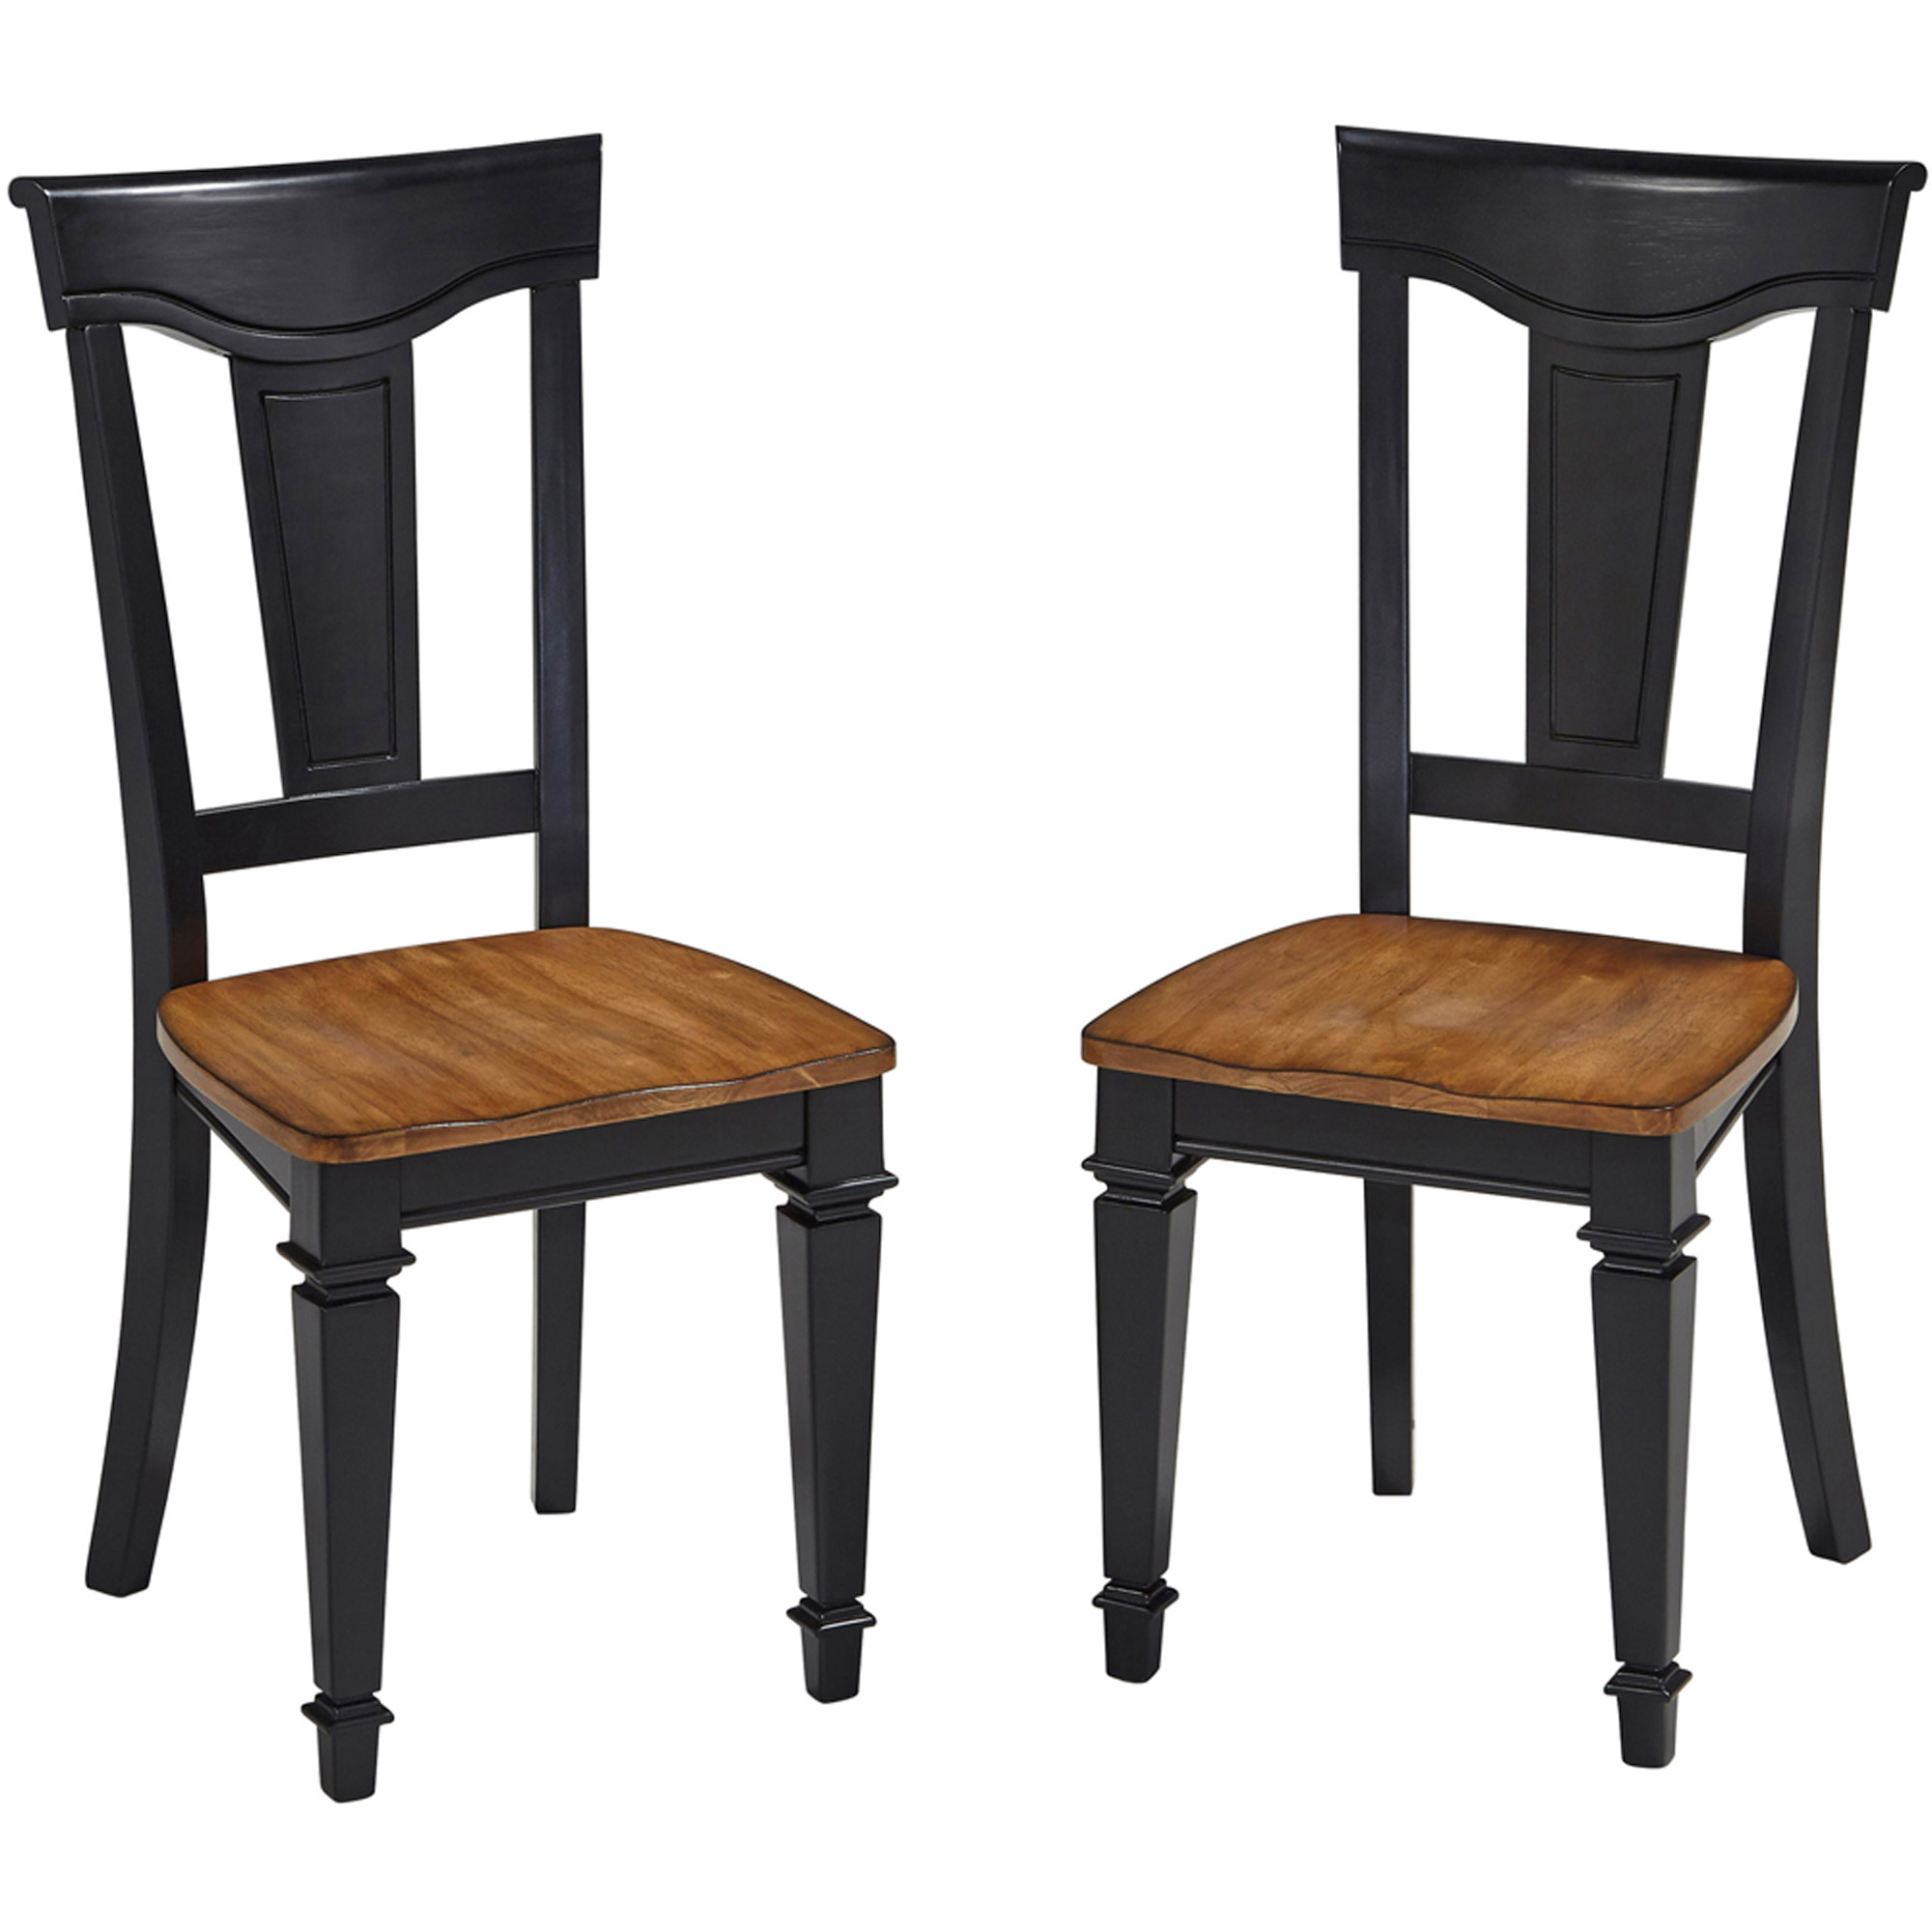 Home Styles Americana Dining Chair, Set of 2